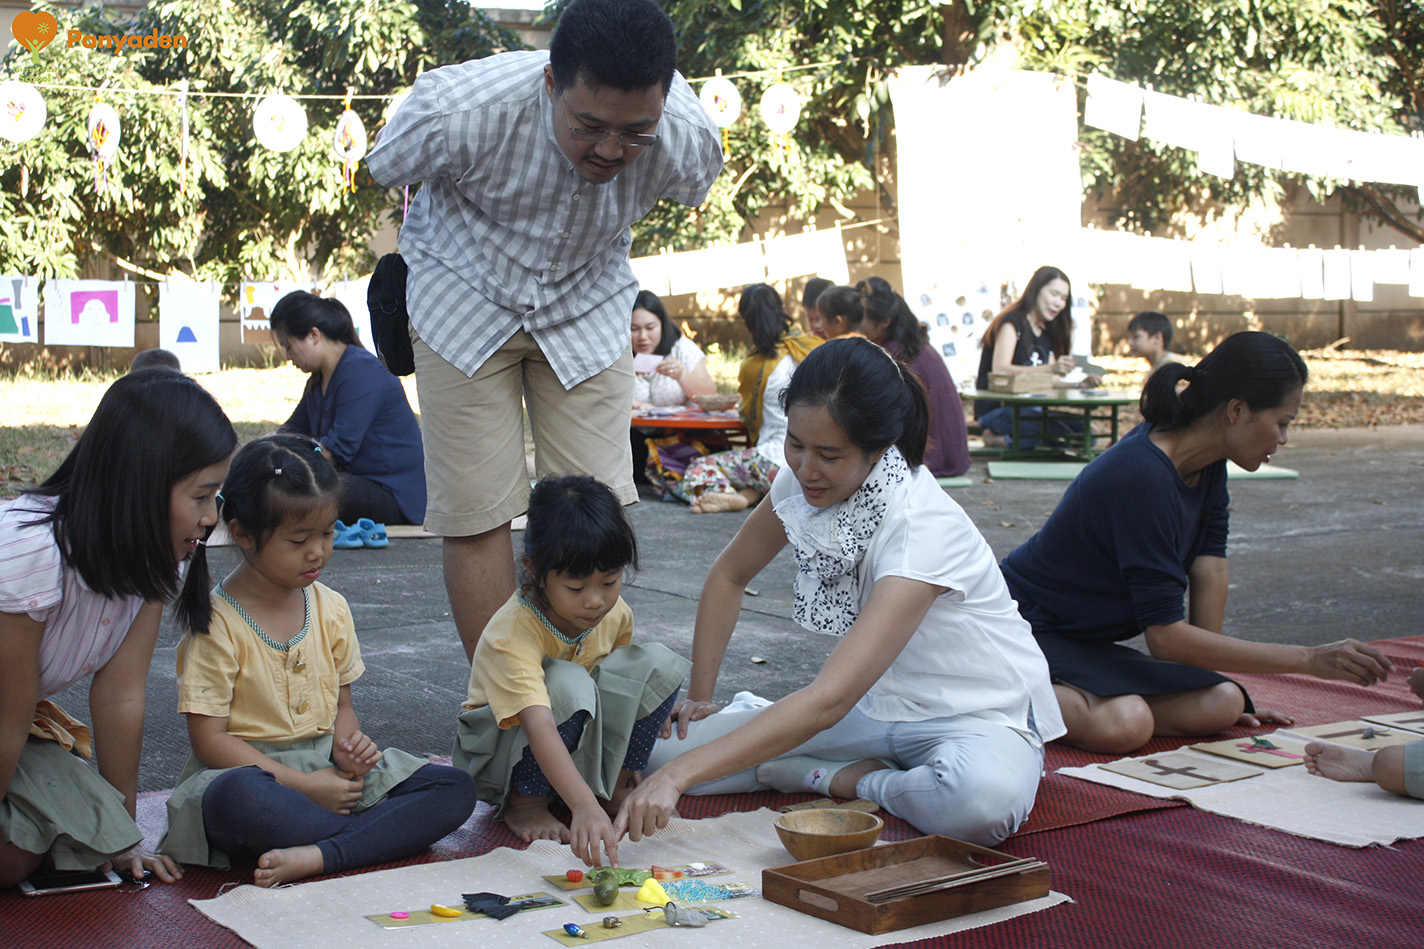 Panyaden Budding Day 1 - student shows parents what they have learnt